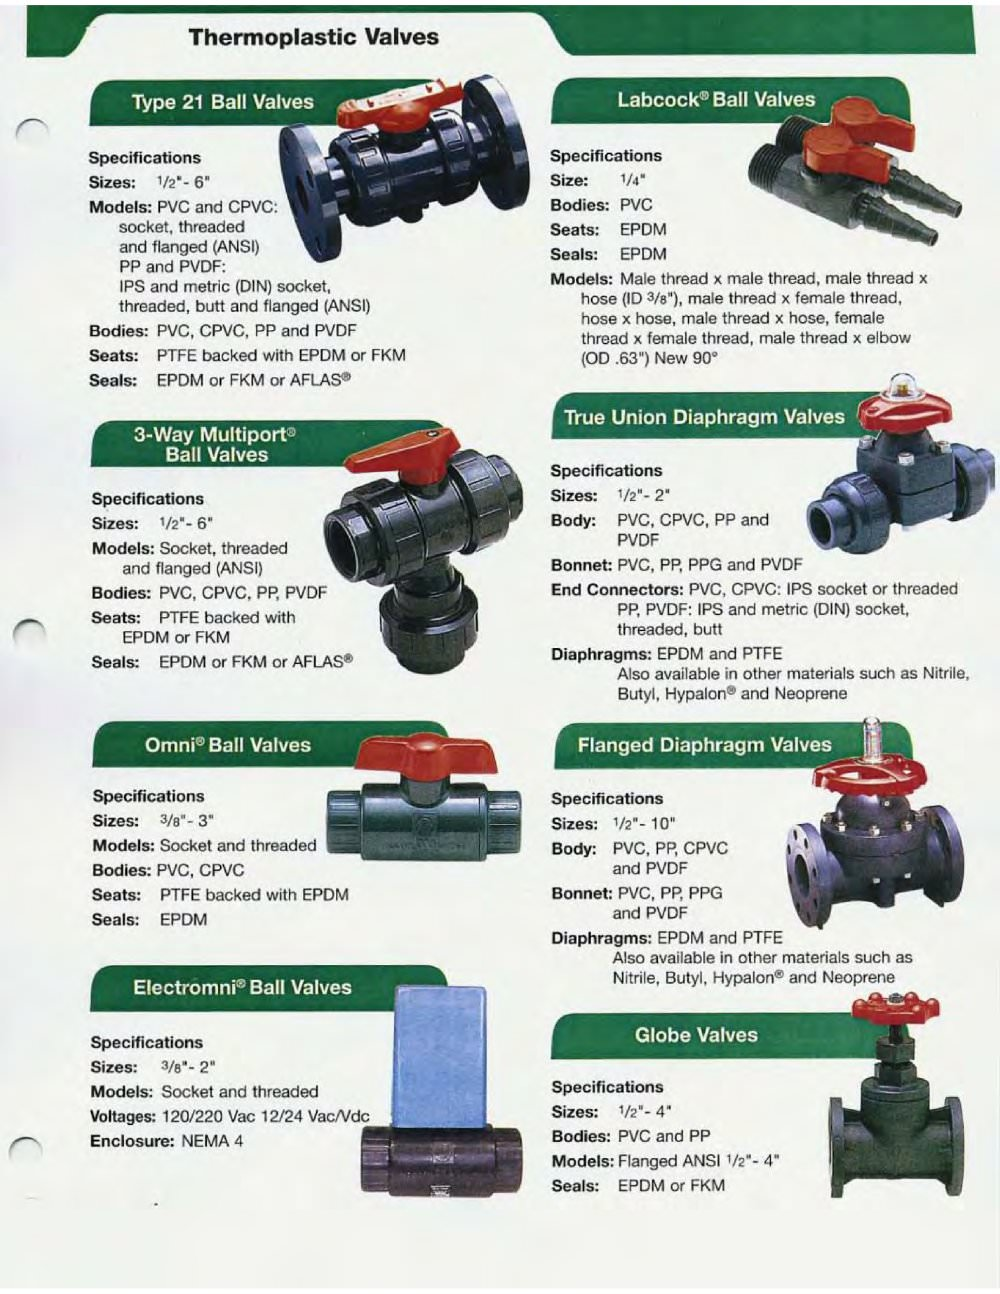 Pvc valve valtorc pdf catalogue technical documentation brochure pvc valve 1 4 pages ccuart Gallery